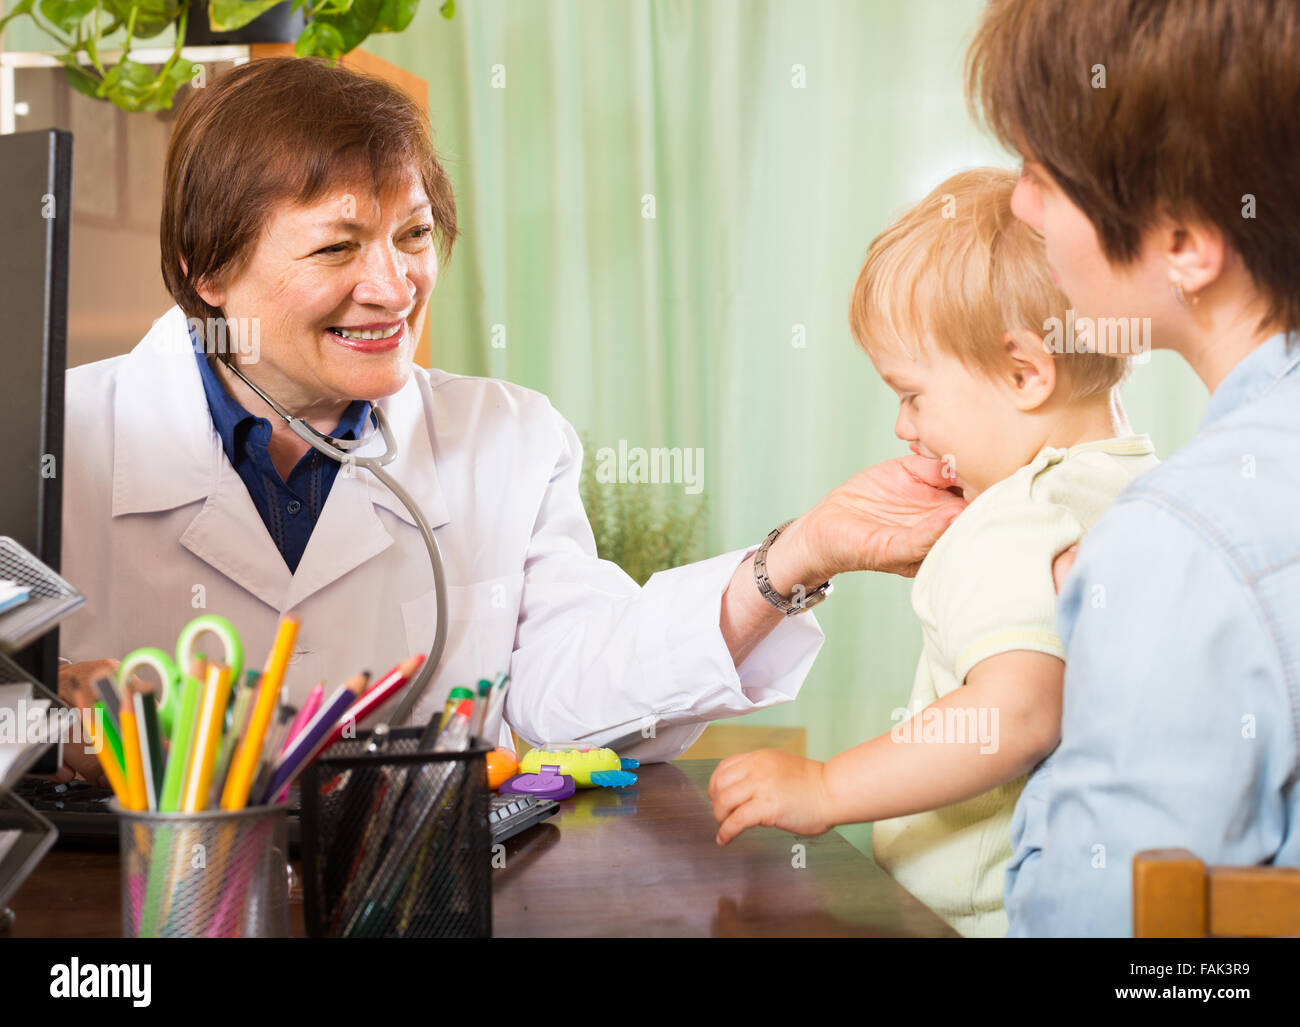 Smiling mature pediatrician doctor talking with mother of baby at clinic office - Stock Image